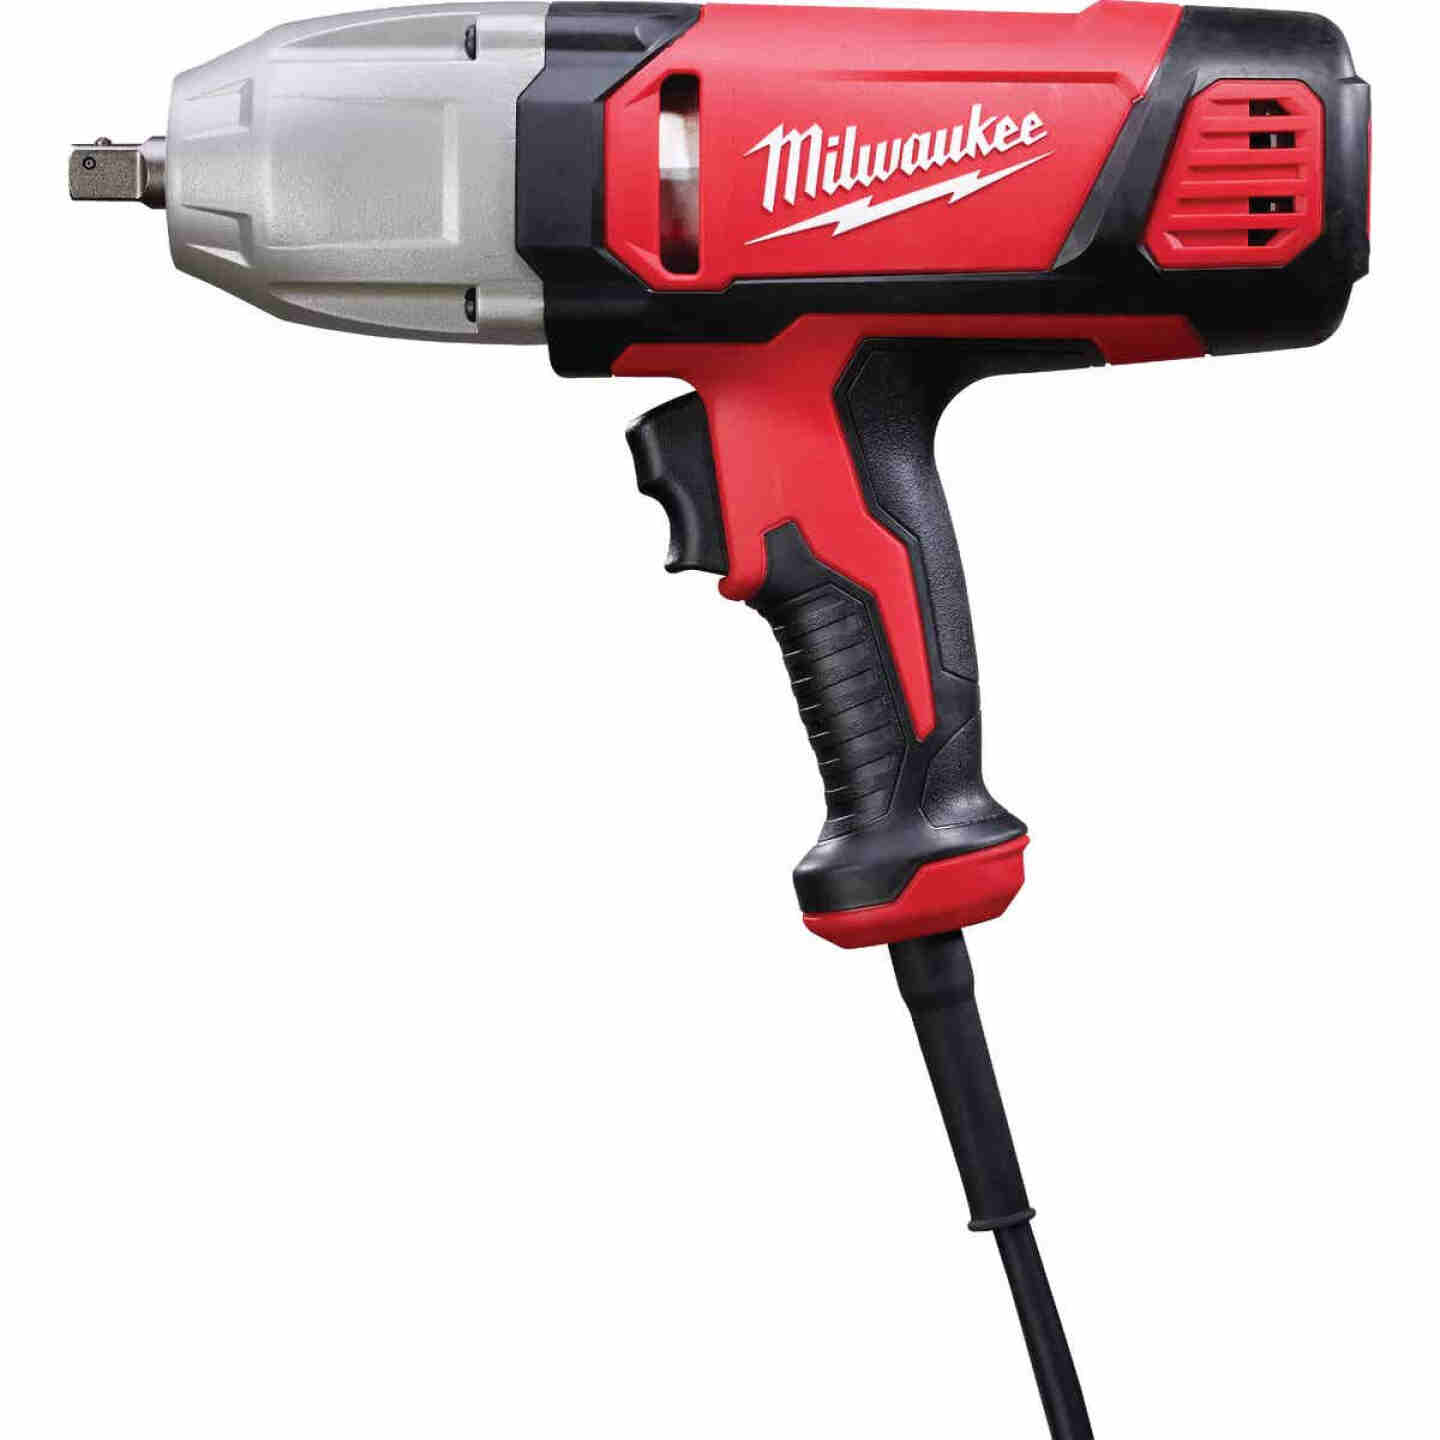 Milwaukee 1/2 In. Impact Wrench with Rocker Switch and Detent Pin Image 2